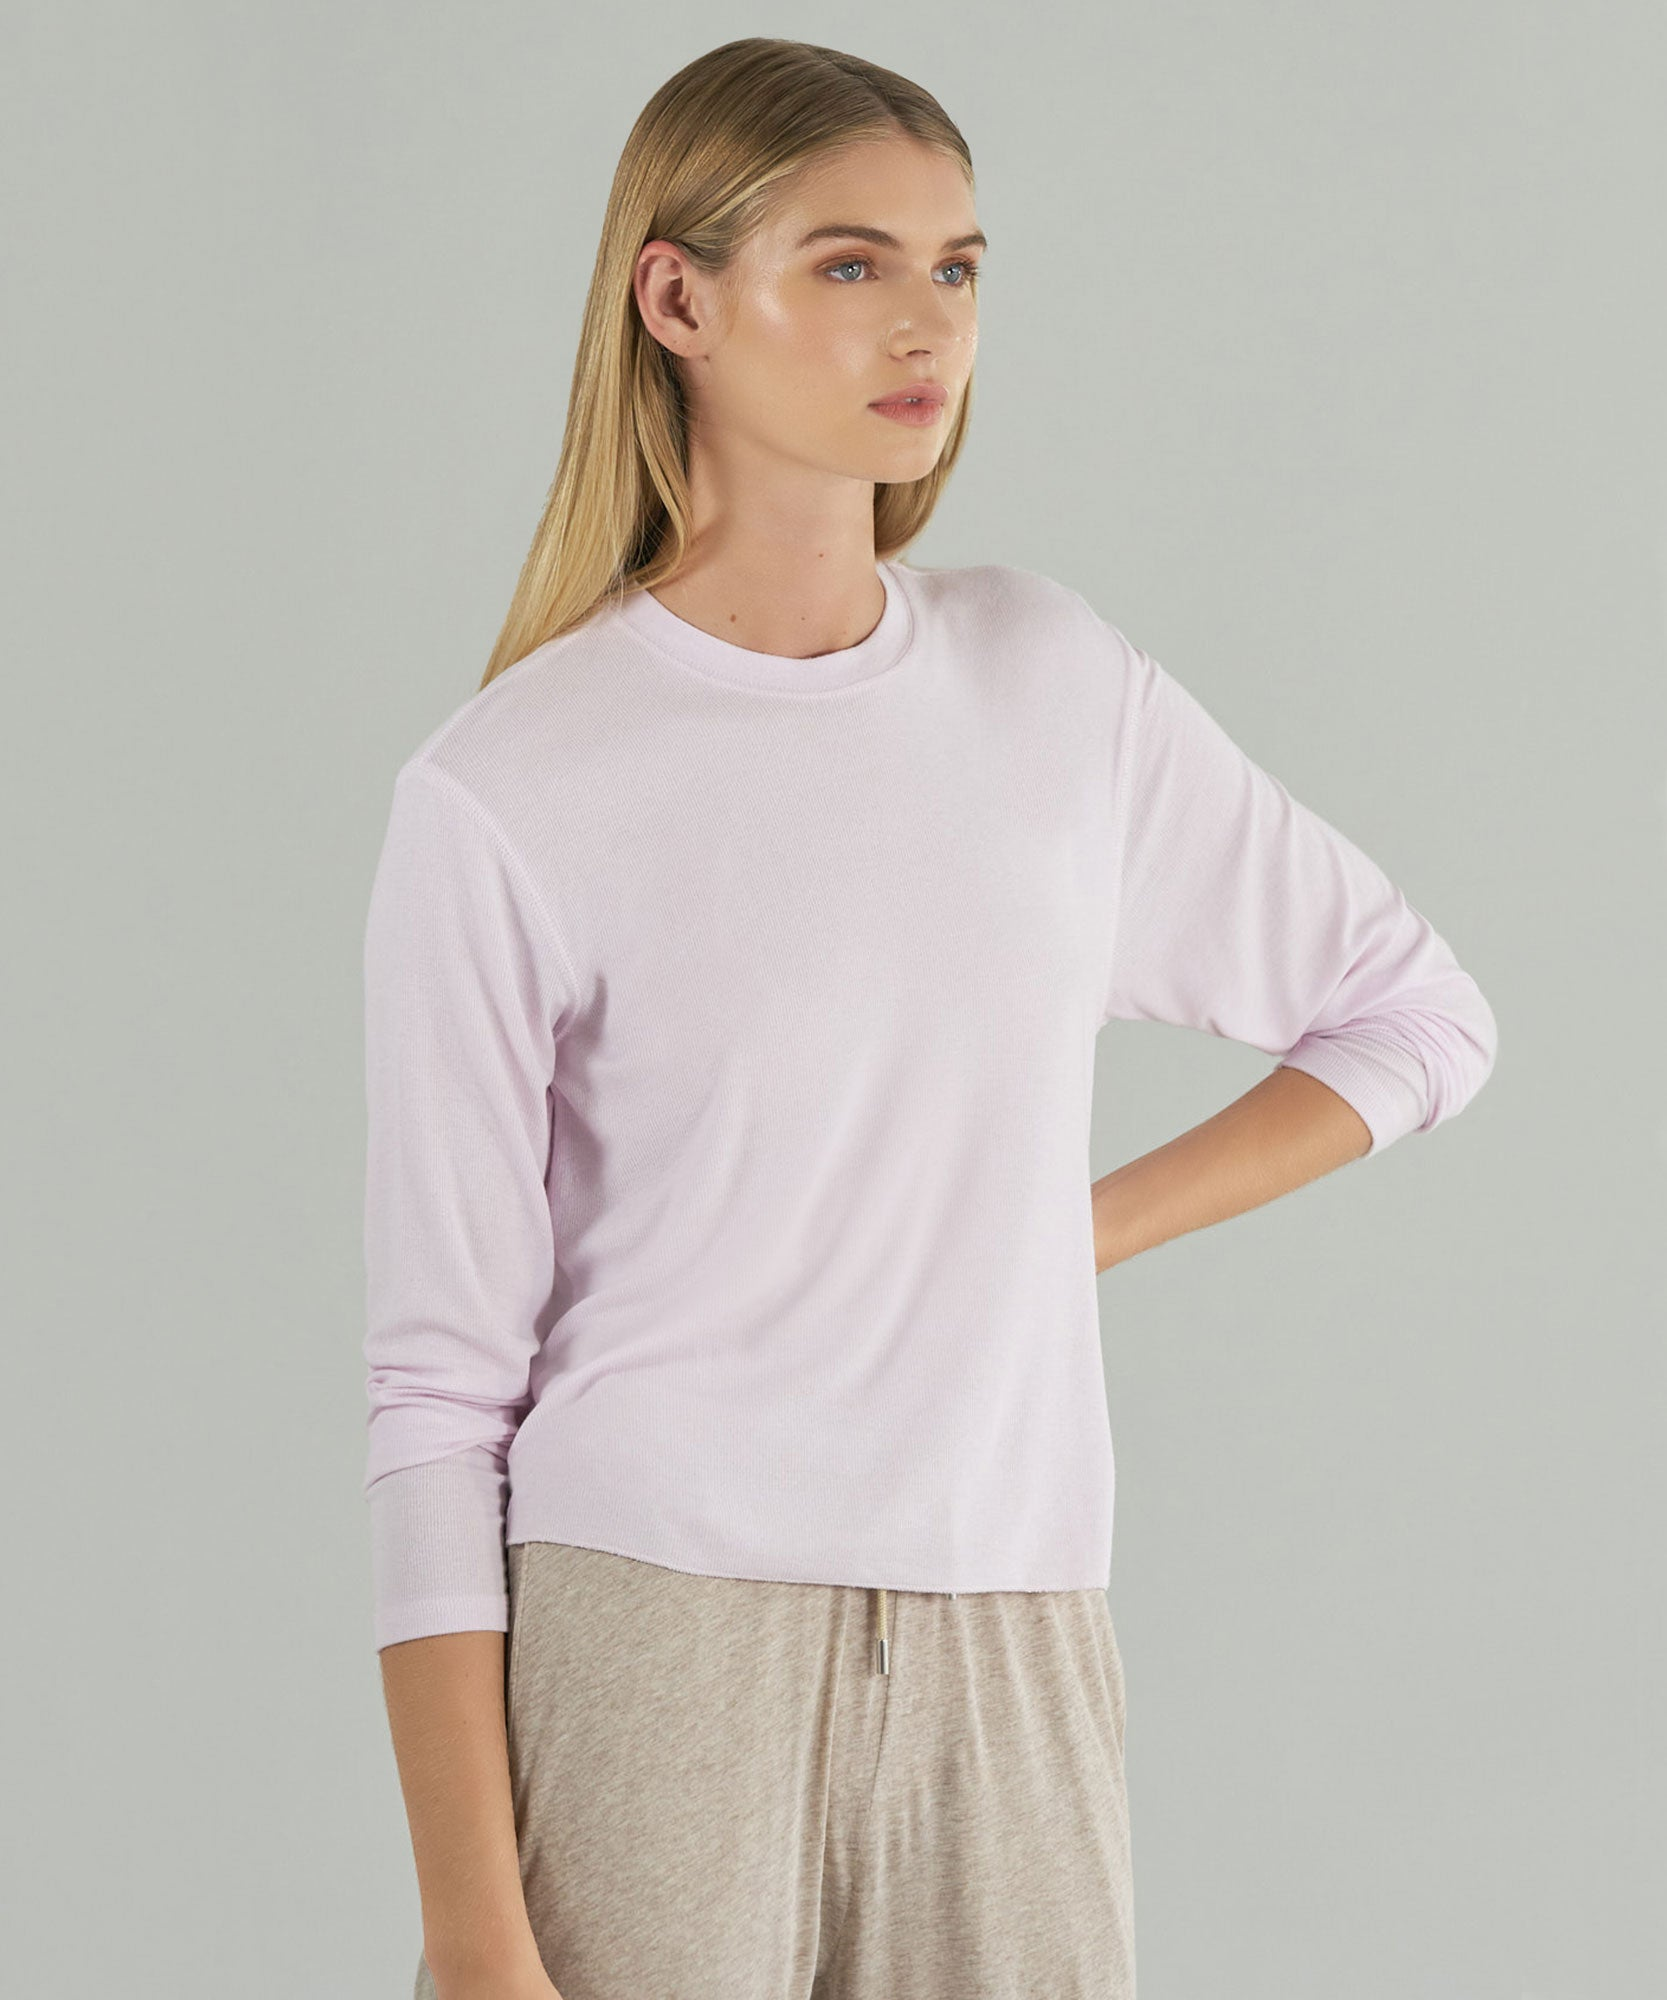 Pale Pink Modal Rib Long Sleeve Crew Neck Boy Tee - Women's Long Sleeve T-Shirt by ATM Anthony Thomas Melillo